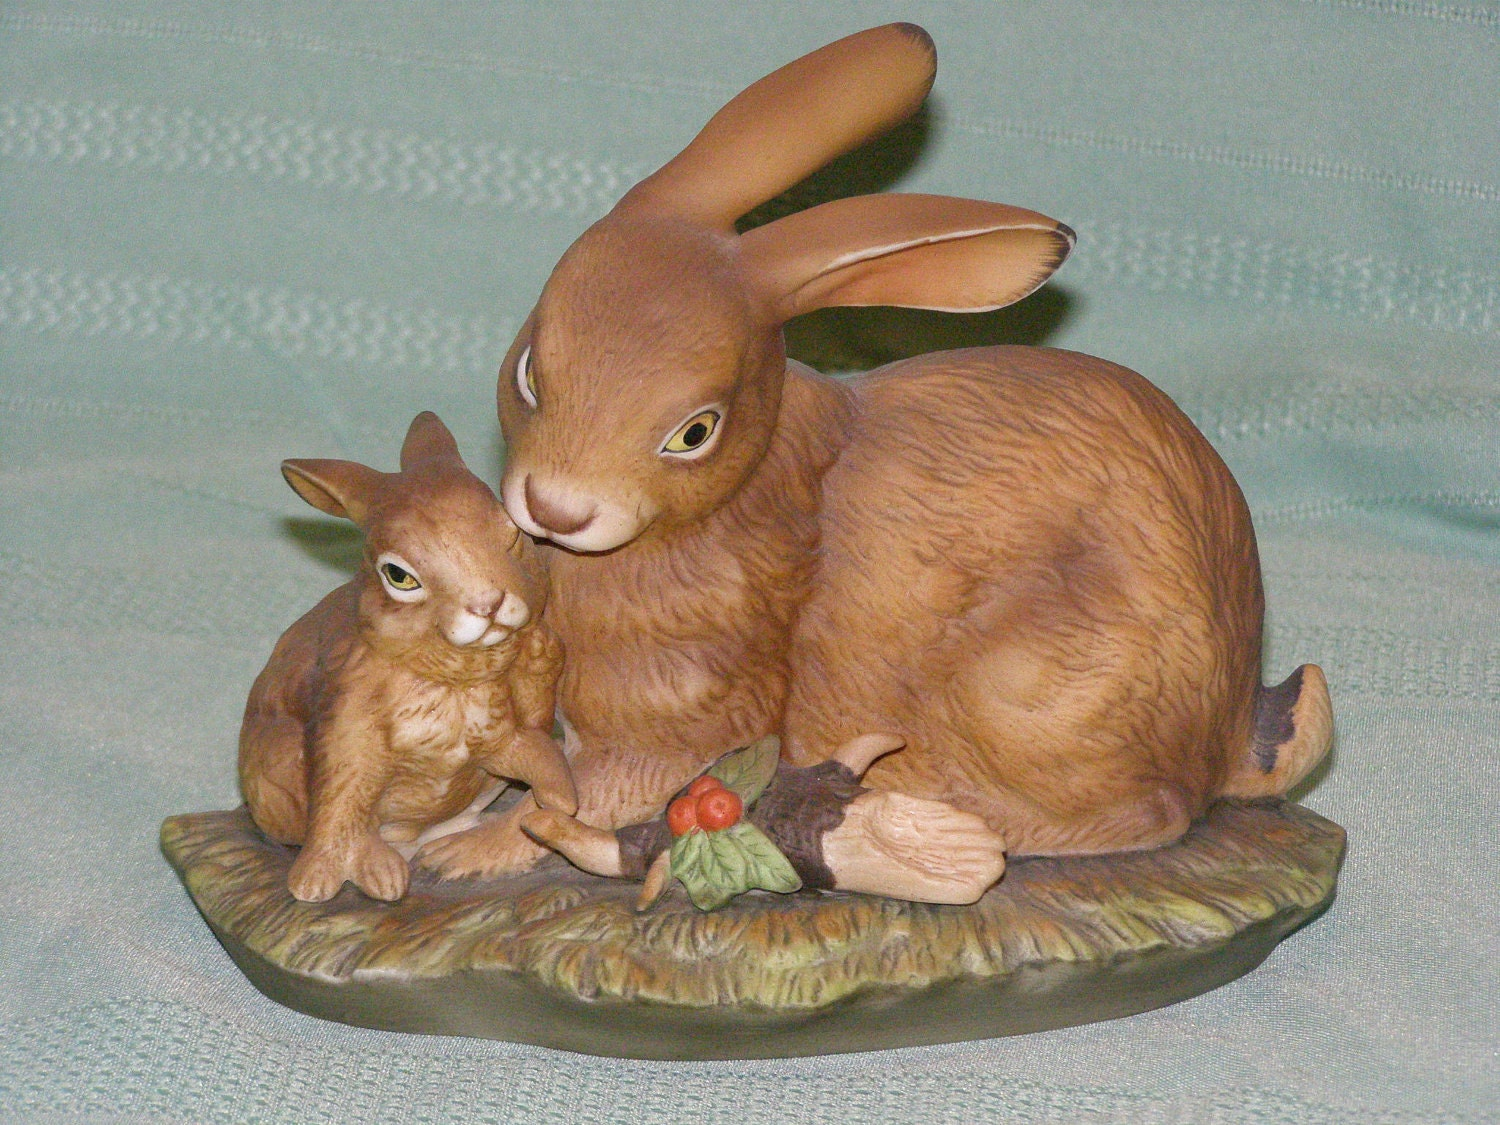 Homco masterpiece porcelain bunny love discontinued by parkie2 for Home interior masterpiece figurines